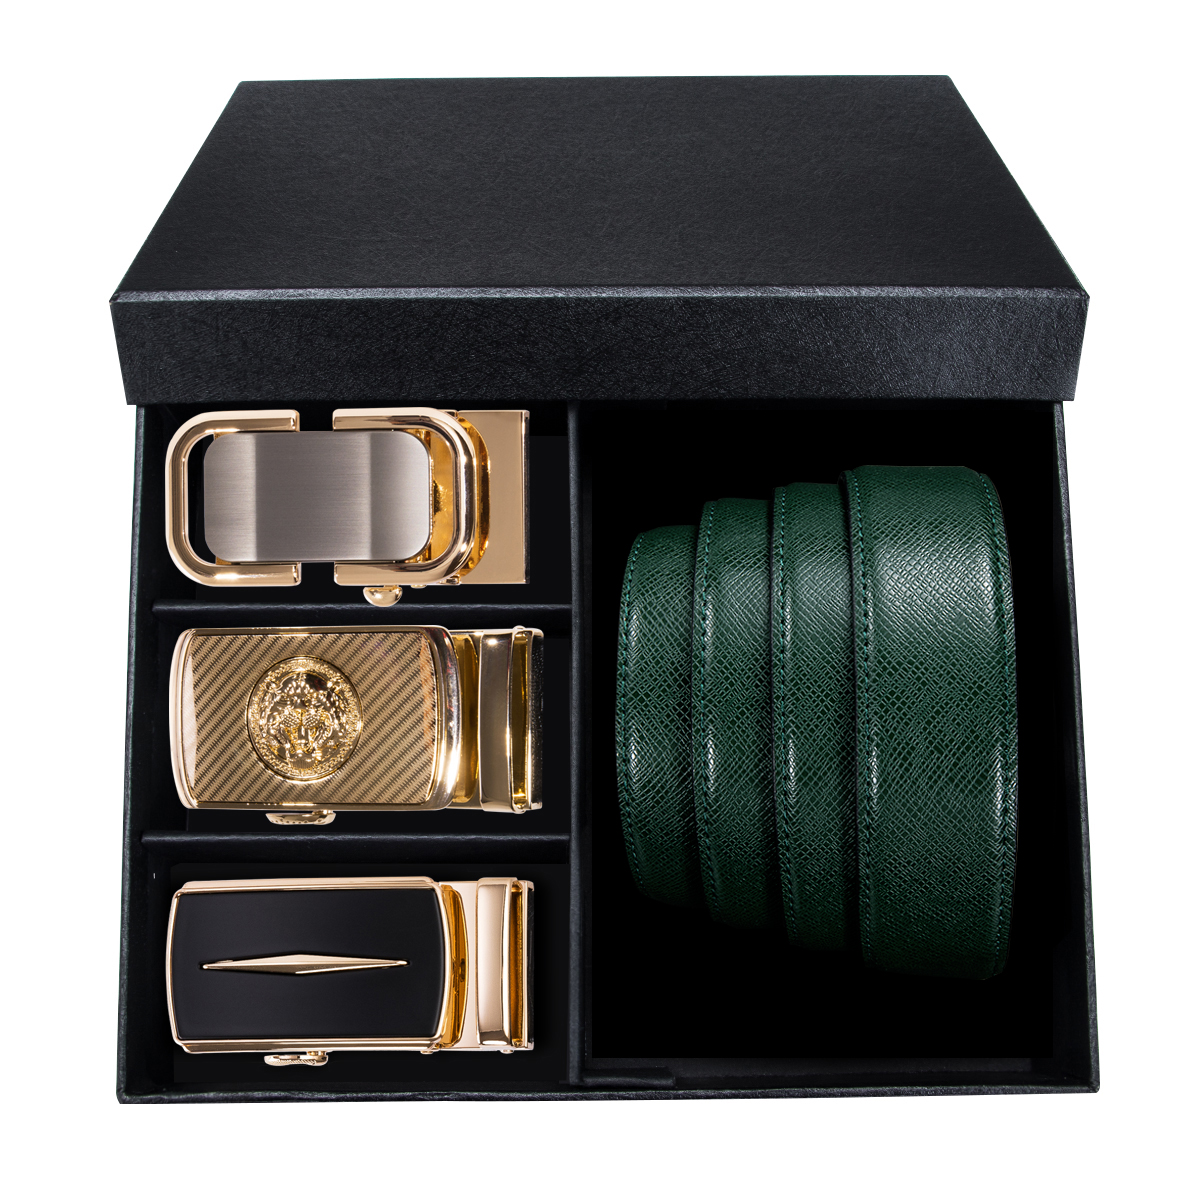 PT-0010 Barry.Wang Automatic Buckle Genuine Leather Luxury Green Belt For Men 110-130cm Long Alloy Buckle Men Belt Gift Box Sets